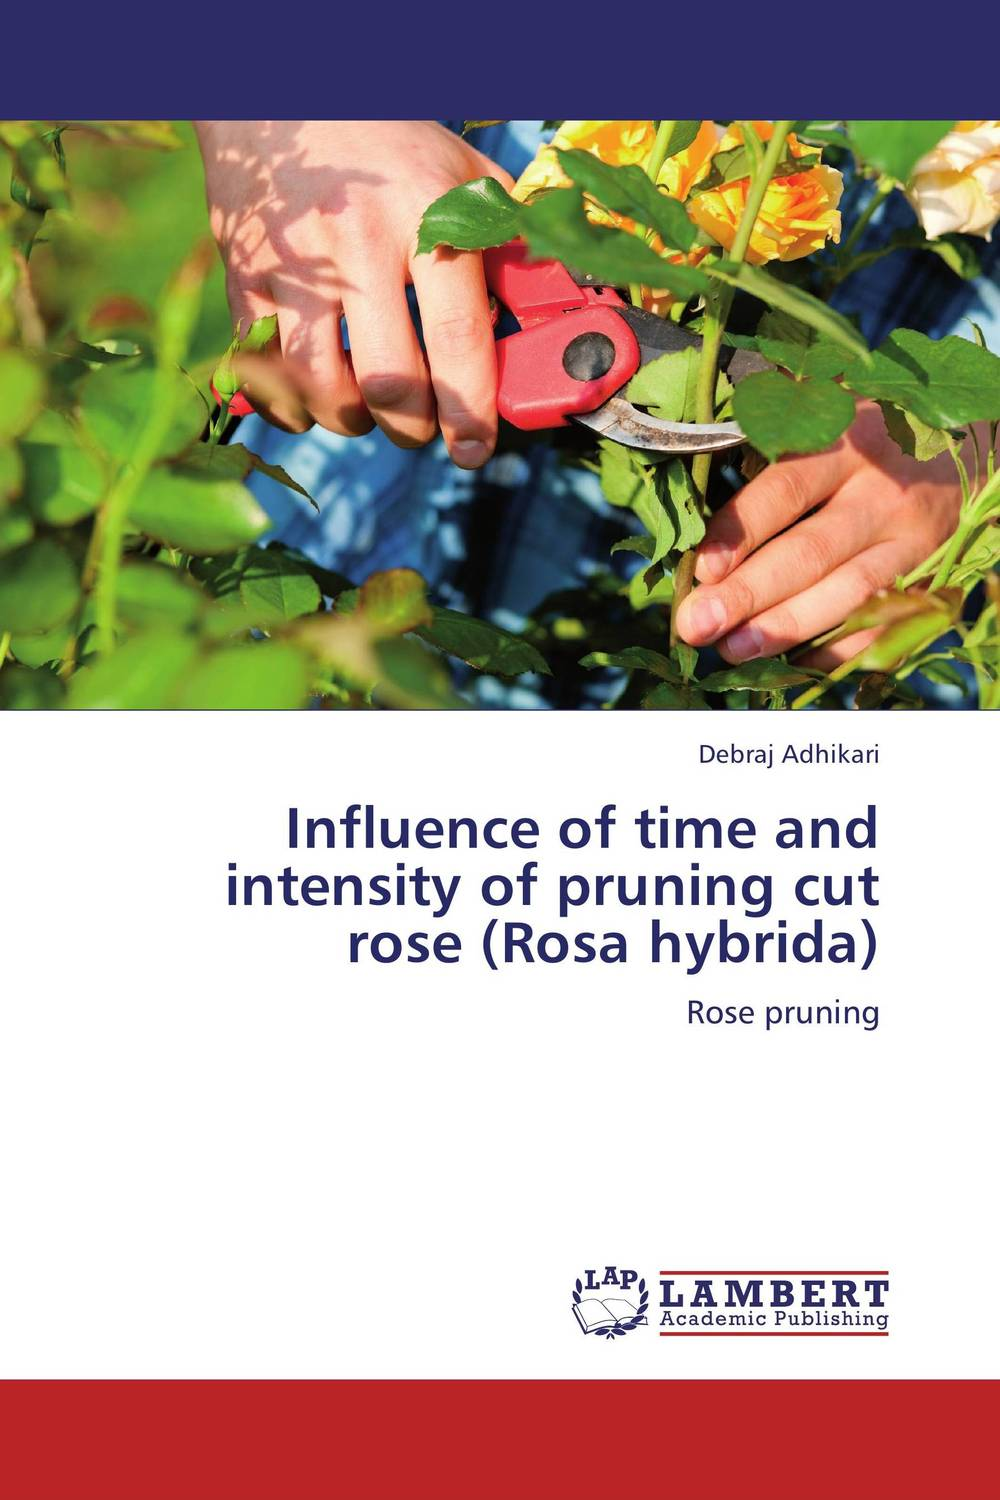 Influence of time and intensity of pruning cut rose (Rosa hybrida)